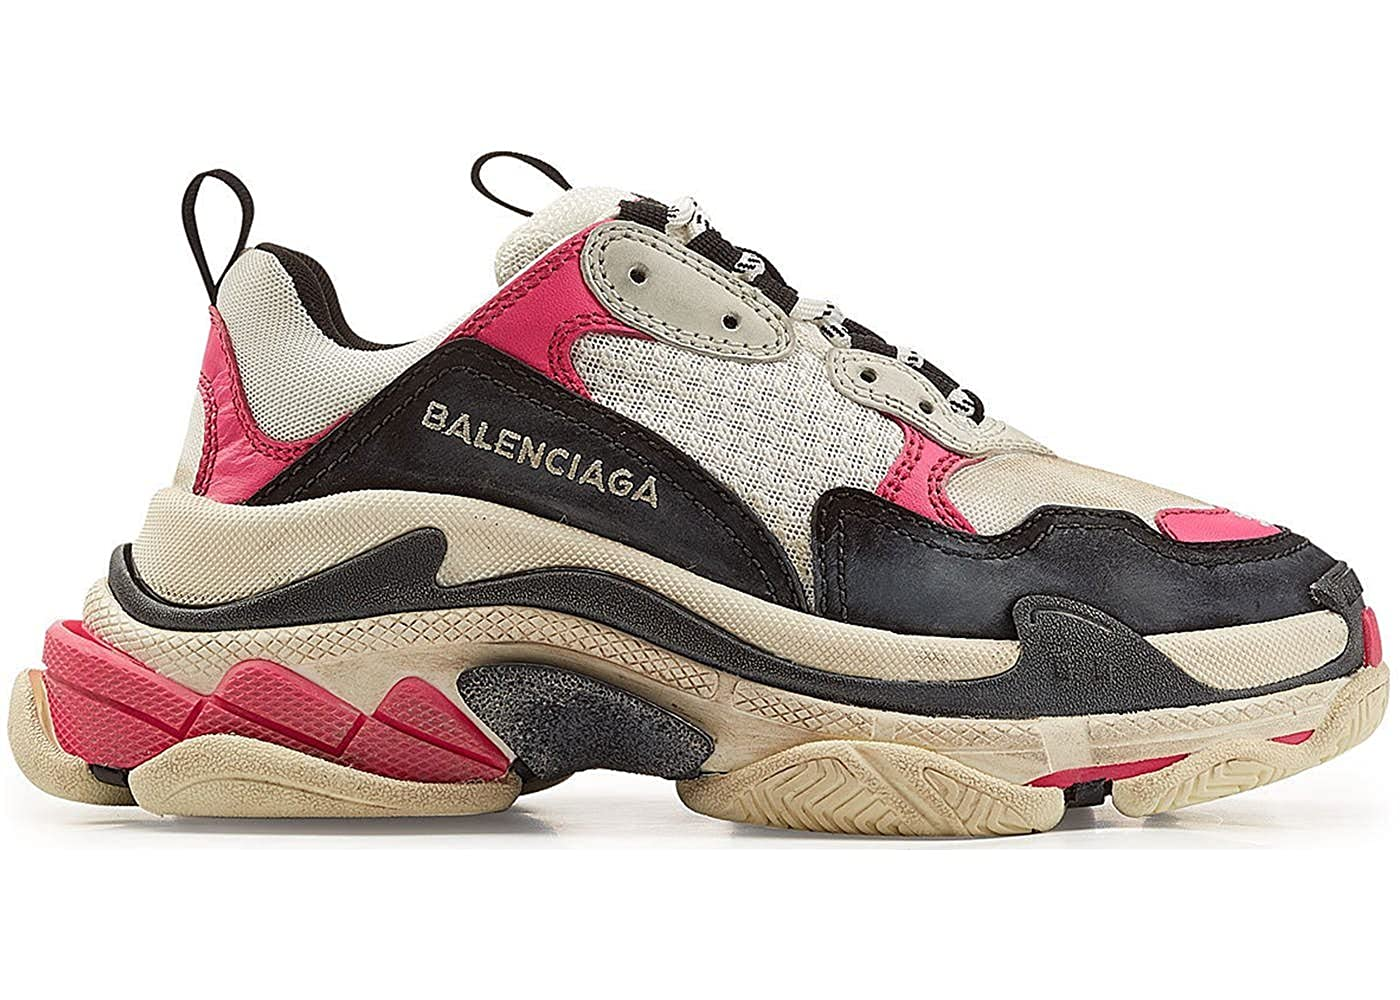 8954dedc850 TOPSHOD Unisex Mens Womens Balenciaga Triple S Sneakers Pink Beige Black   Amazon.co.uk  Shoes   Bags